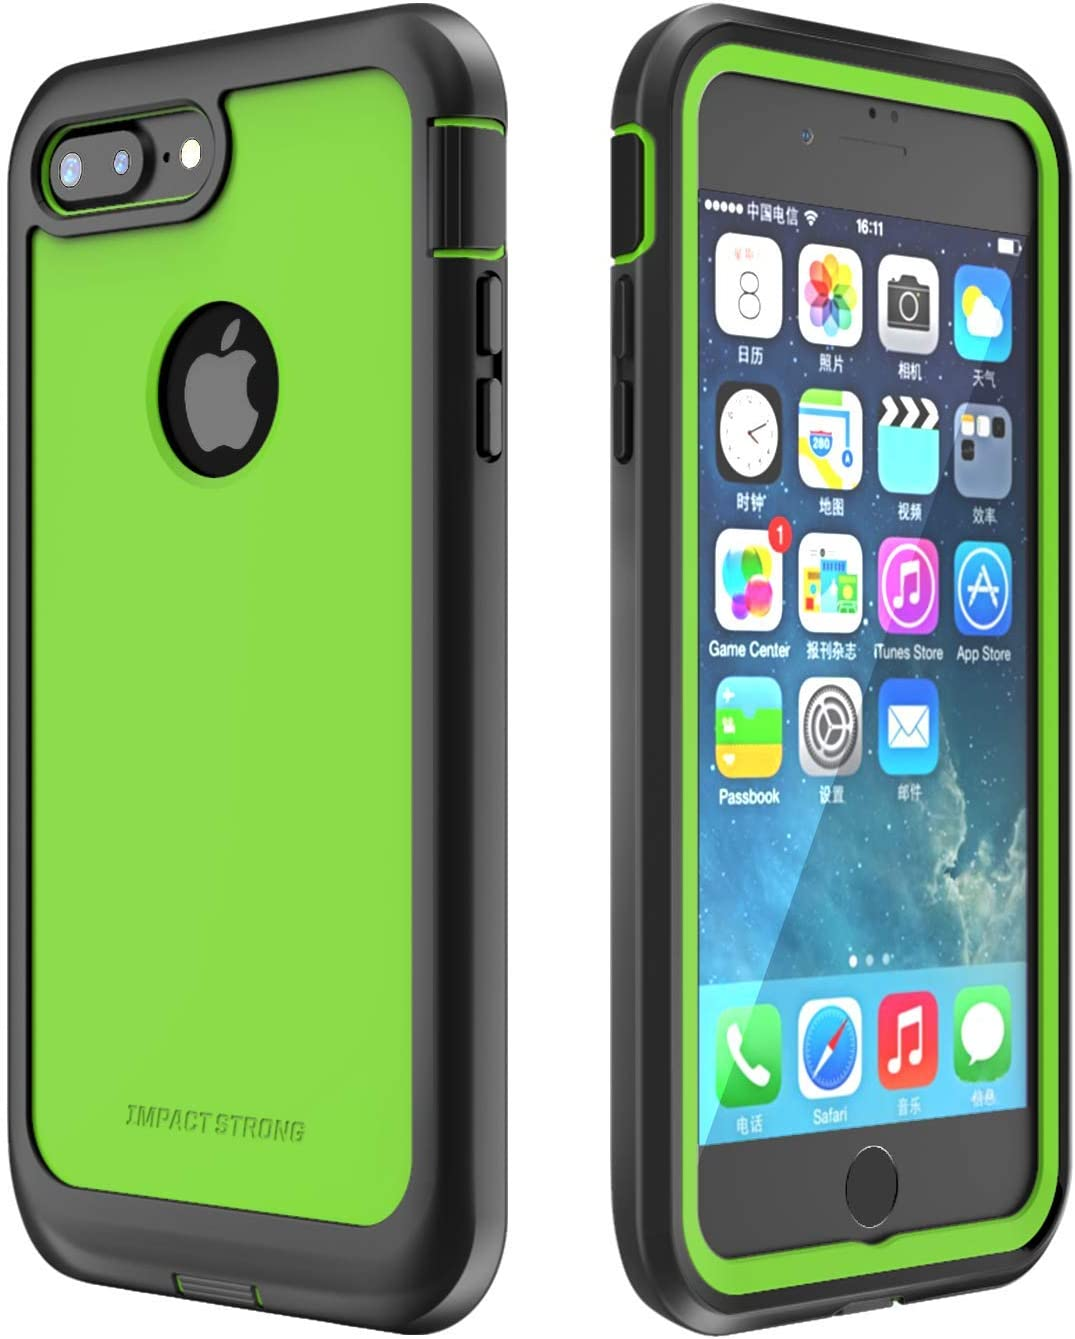 ImpactStrong iPhone 7 Plus/iPhone 8 Plus Case, Ultra Protective Case with Built-in Clear Screen Protector Full Body Cover for iPhone 7 Plus/iPhone 8 Plus (Lime Green)